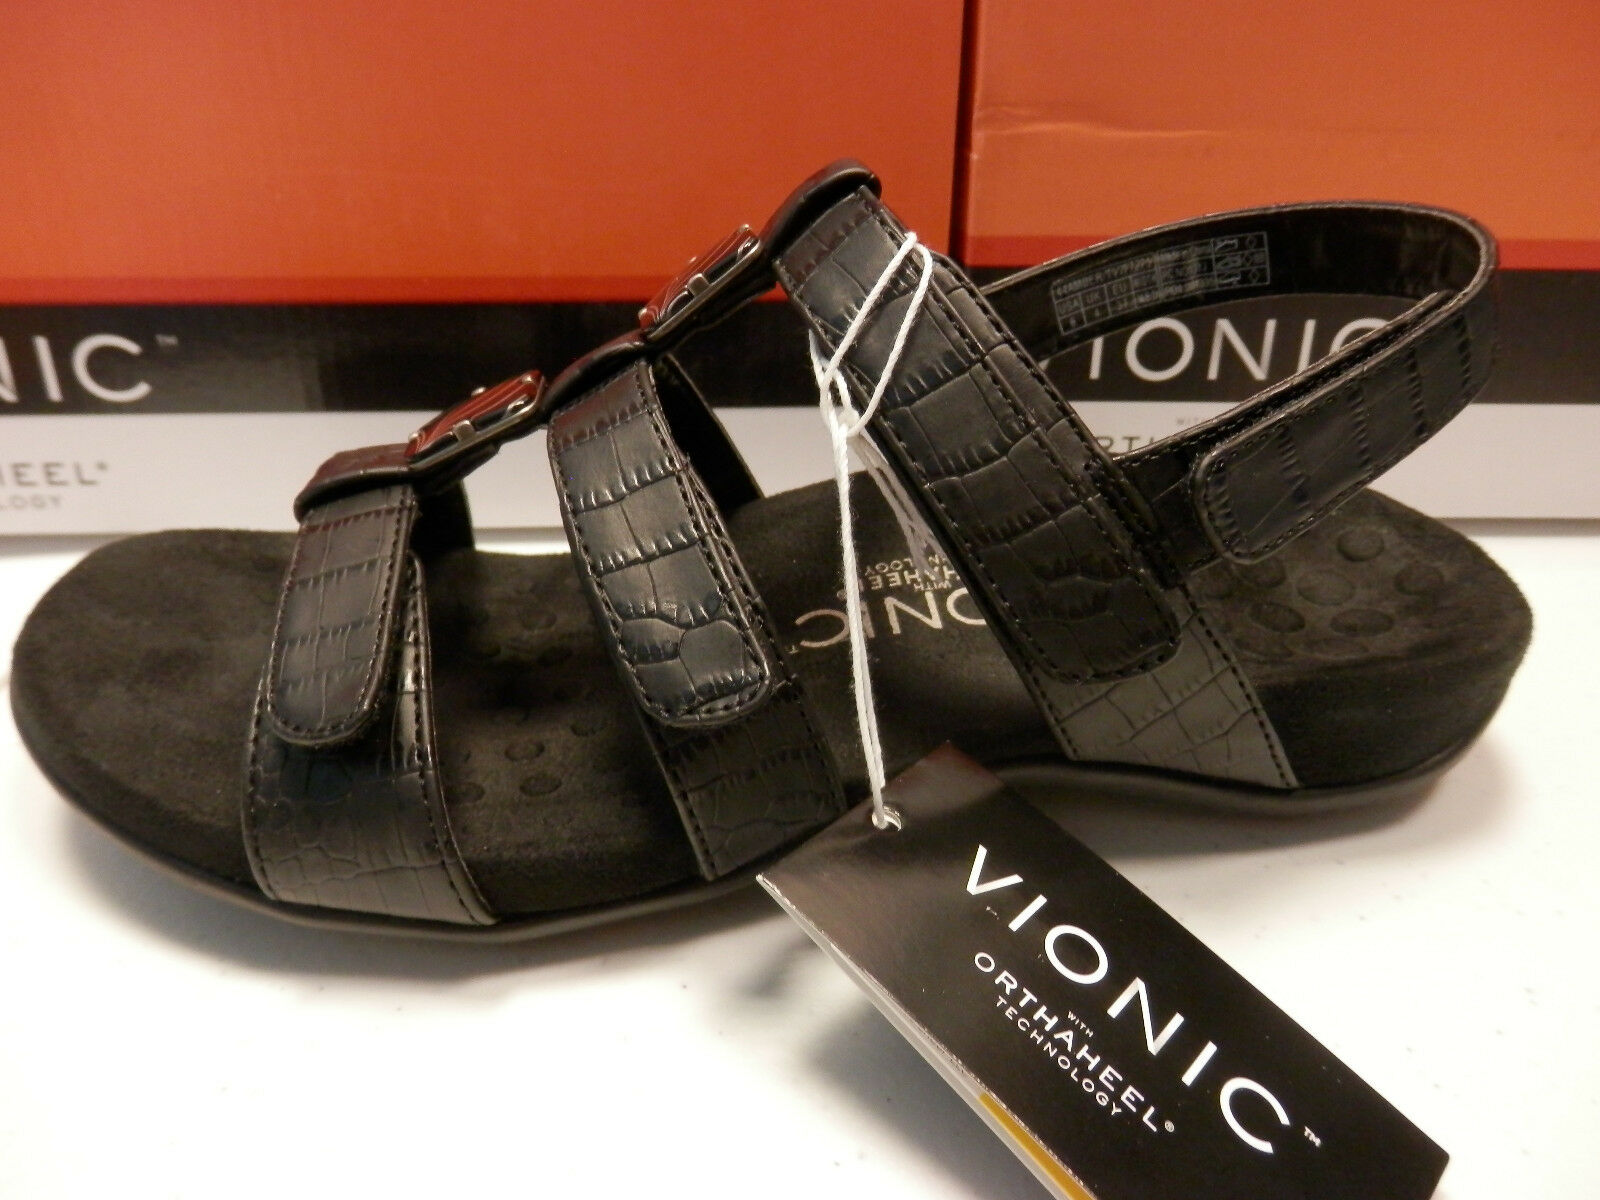 VIONIC WOMENS SANDALS AMBER BLACK CROC SIZE 7